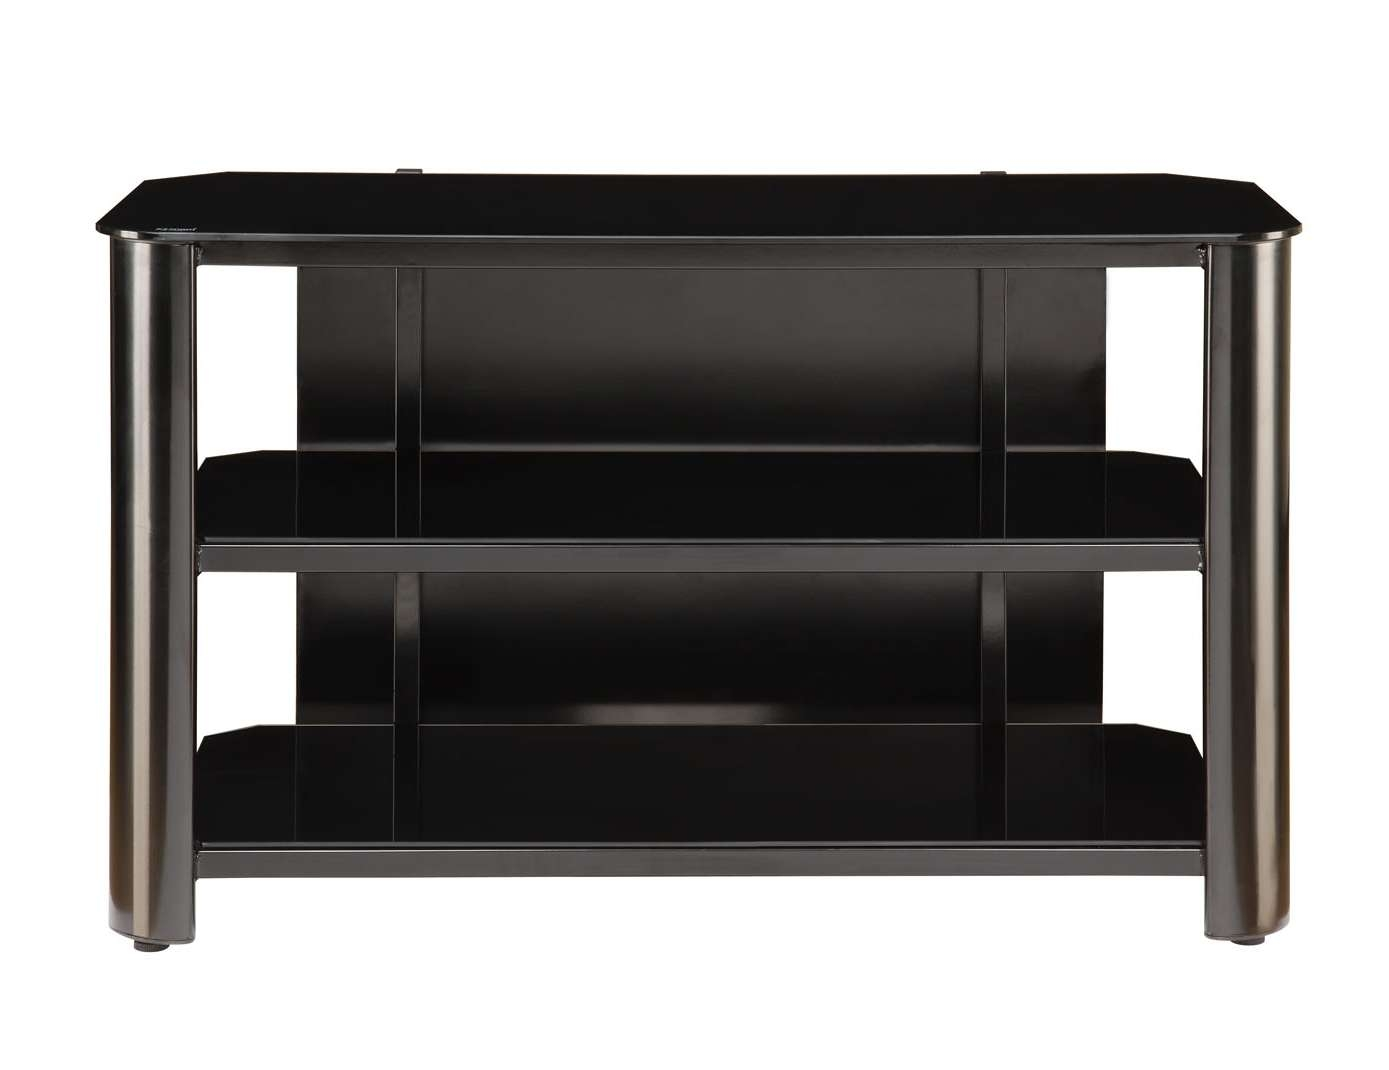 Innovex Black Glass Tv Stand Tpt42G29 In Black Glass Tv Stands (View 10 of 15)